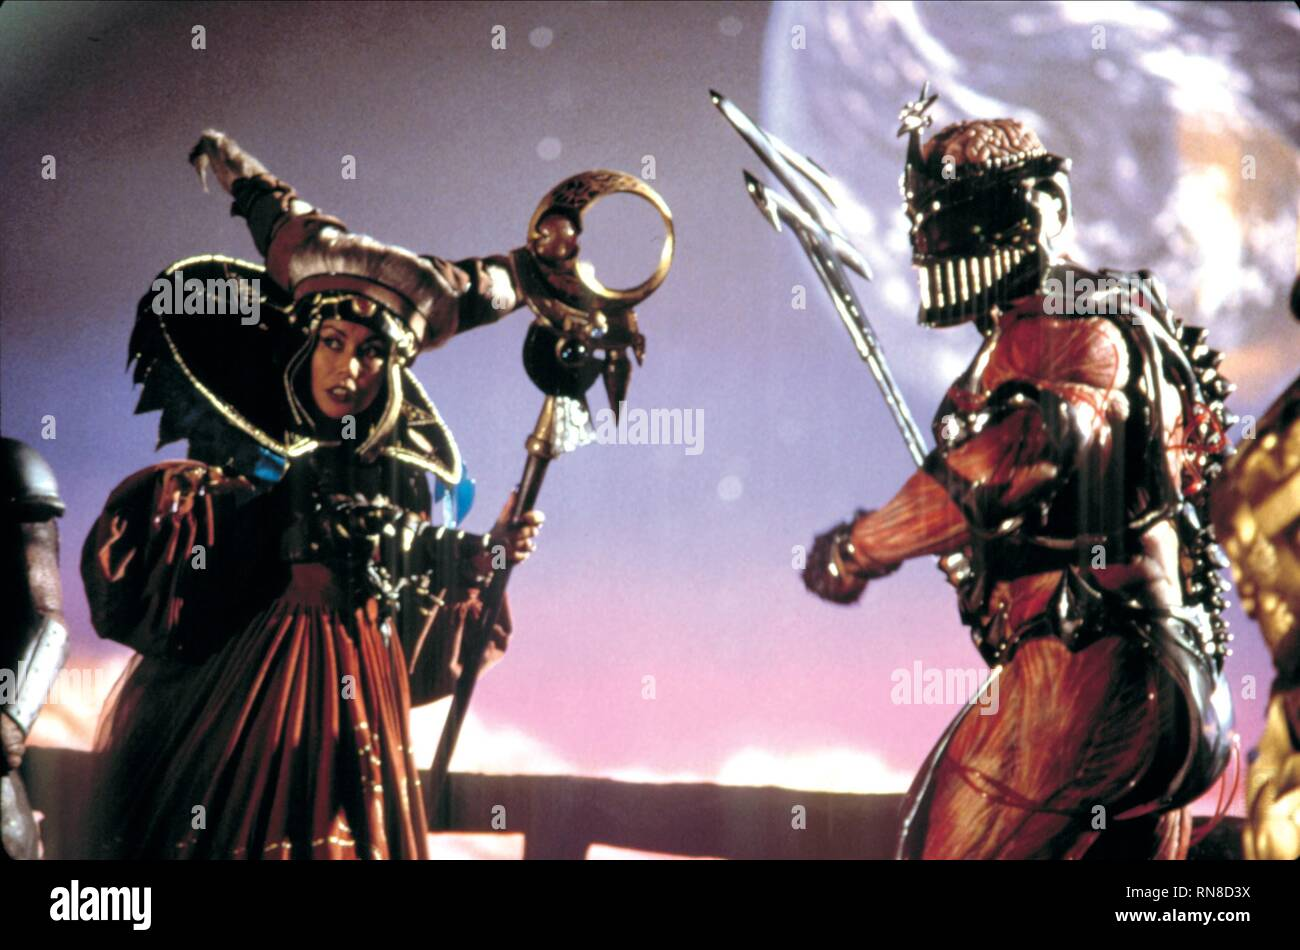 CORTEZ,GINTHER, MIGHTY MORPHIN POWER RANGERS: THE MOVIE, 1995 - Stock Image